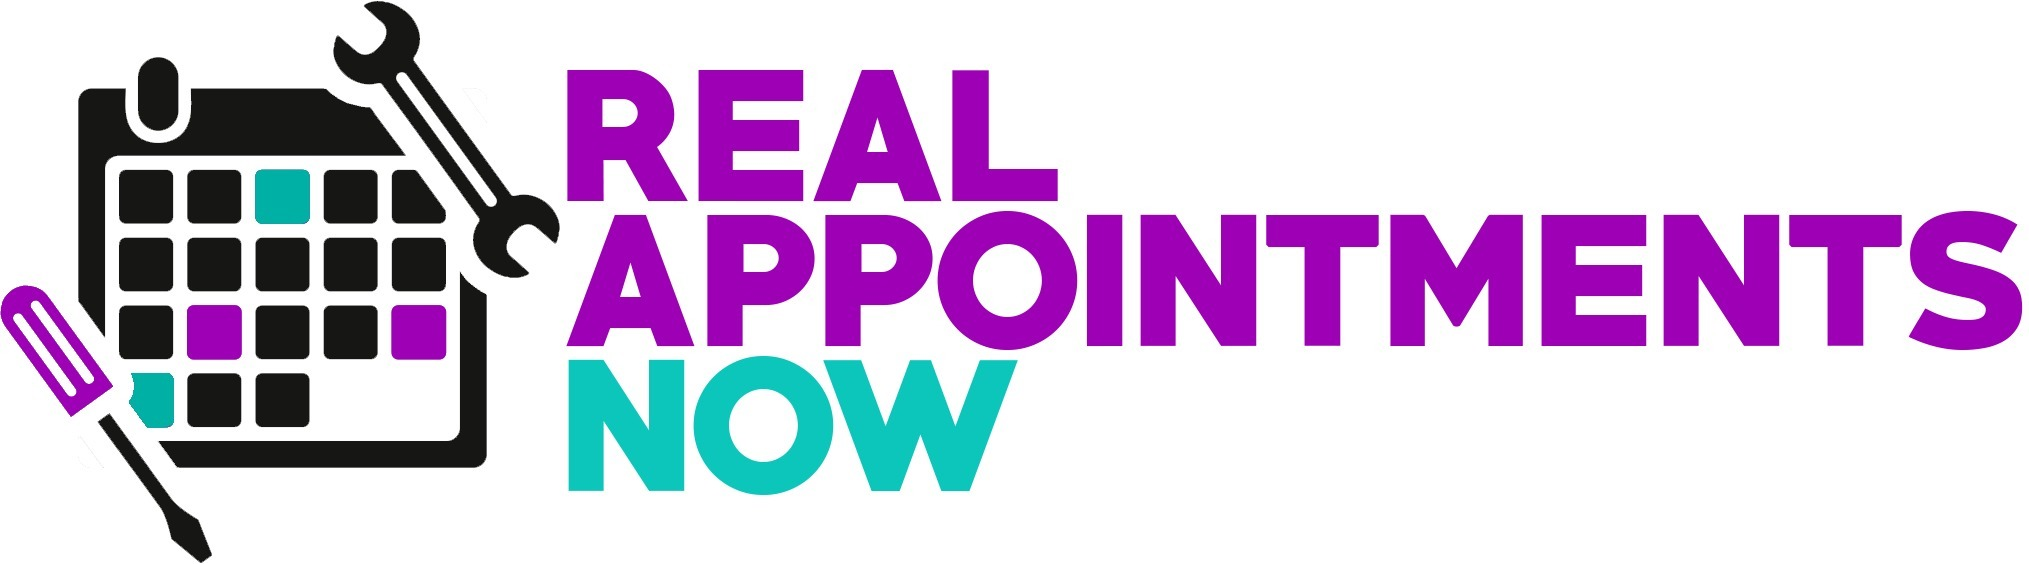 REAL APPOINTMENTS  (@realappointmentsnow) Cover Image